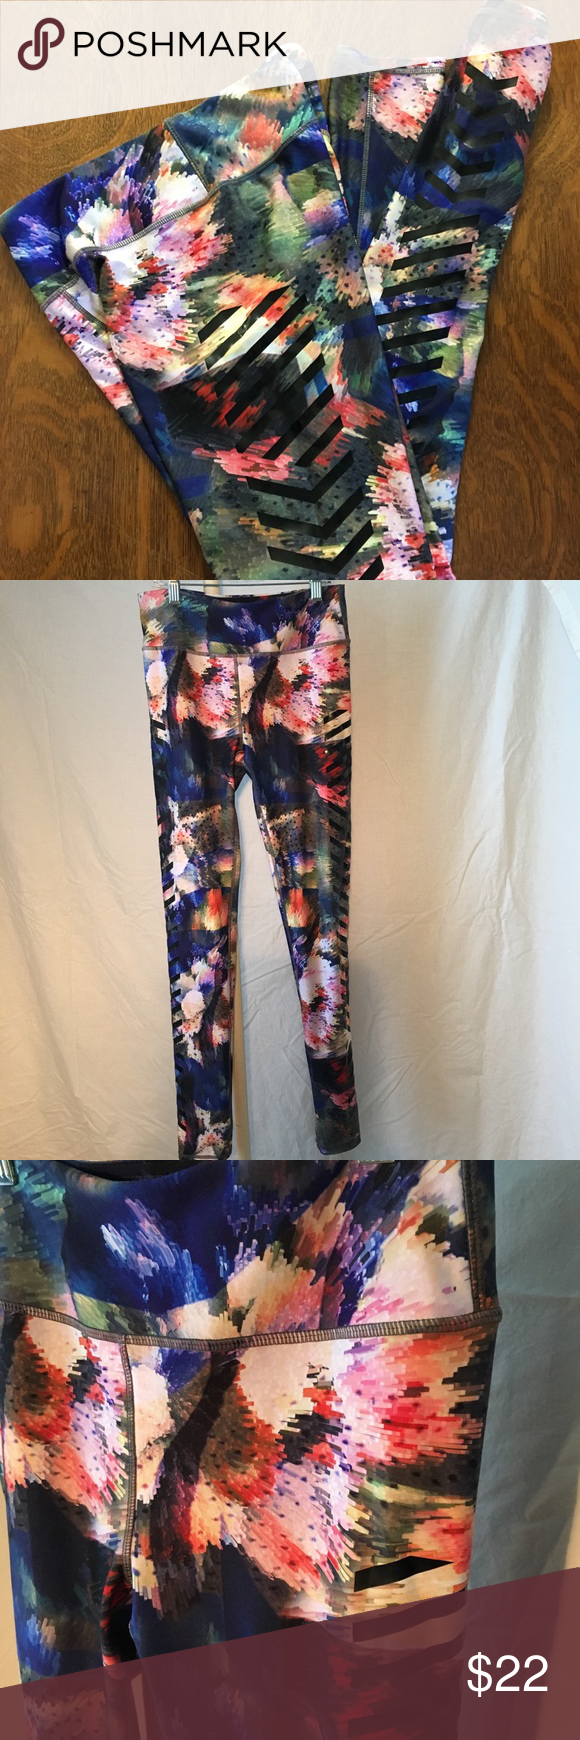 """30dad2c10146fc Kyodan floral geometric athletic leggings size S Blue/Pink/Green multi  geometric floral. Soft and stretchy! Flat waist approx 13"""" Rise approx 10""""  Inseam ..."""